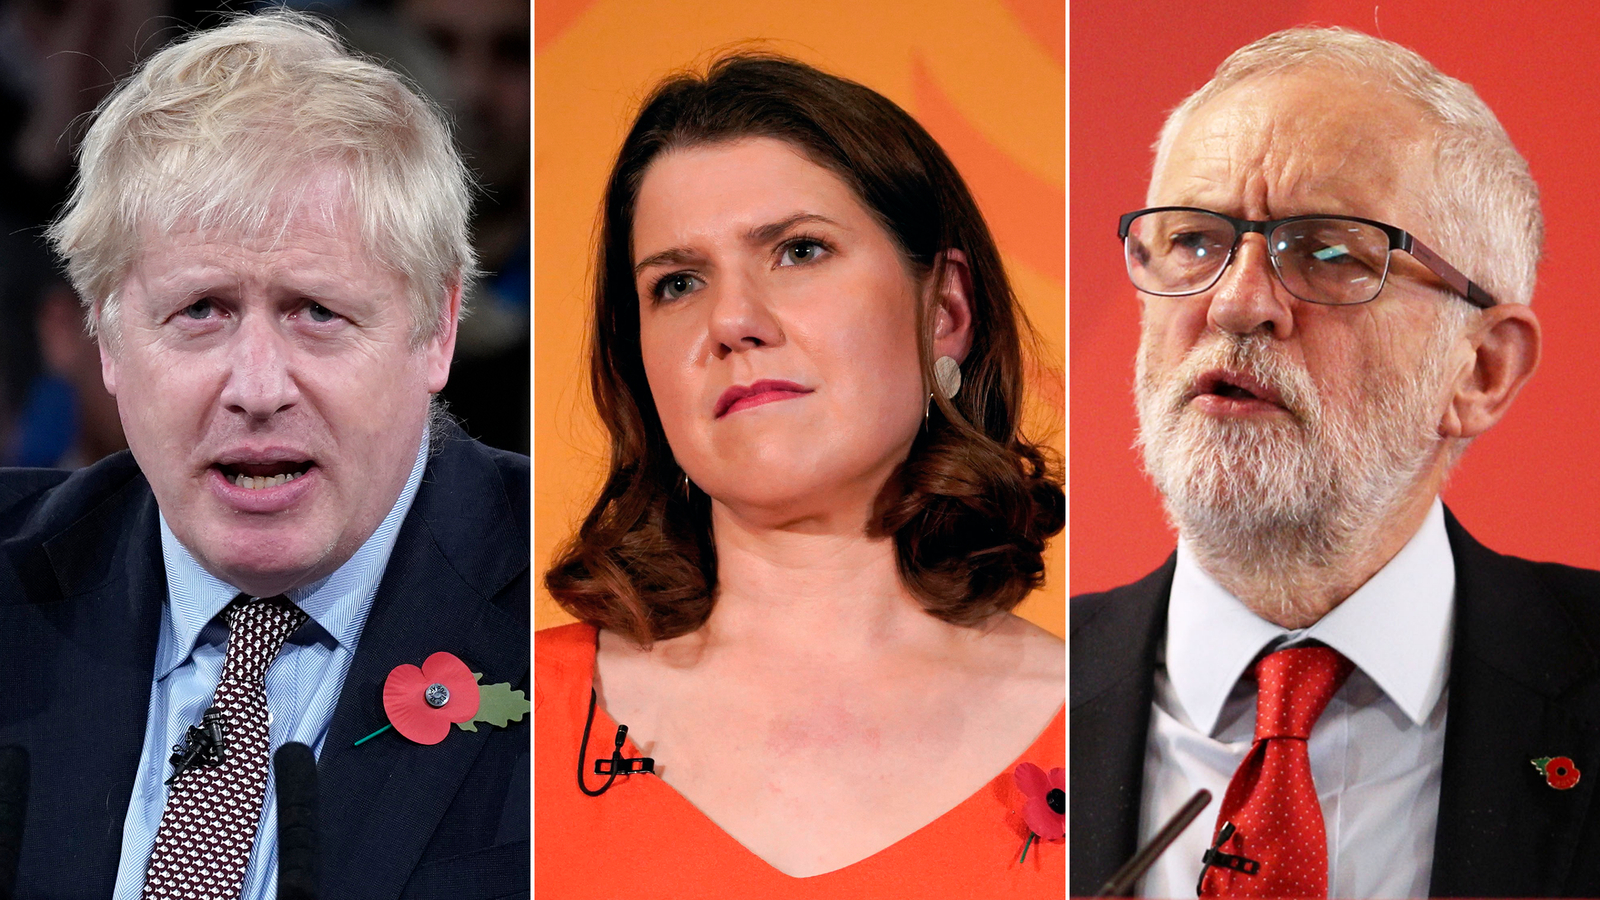 UK media outlets can't find candidates worth endorsing in crucial election